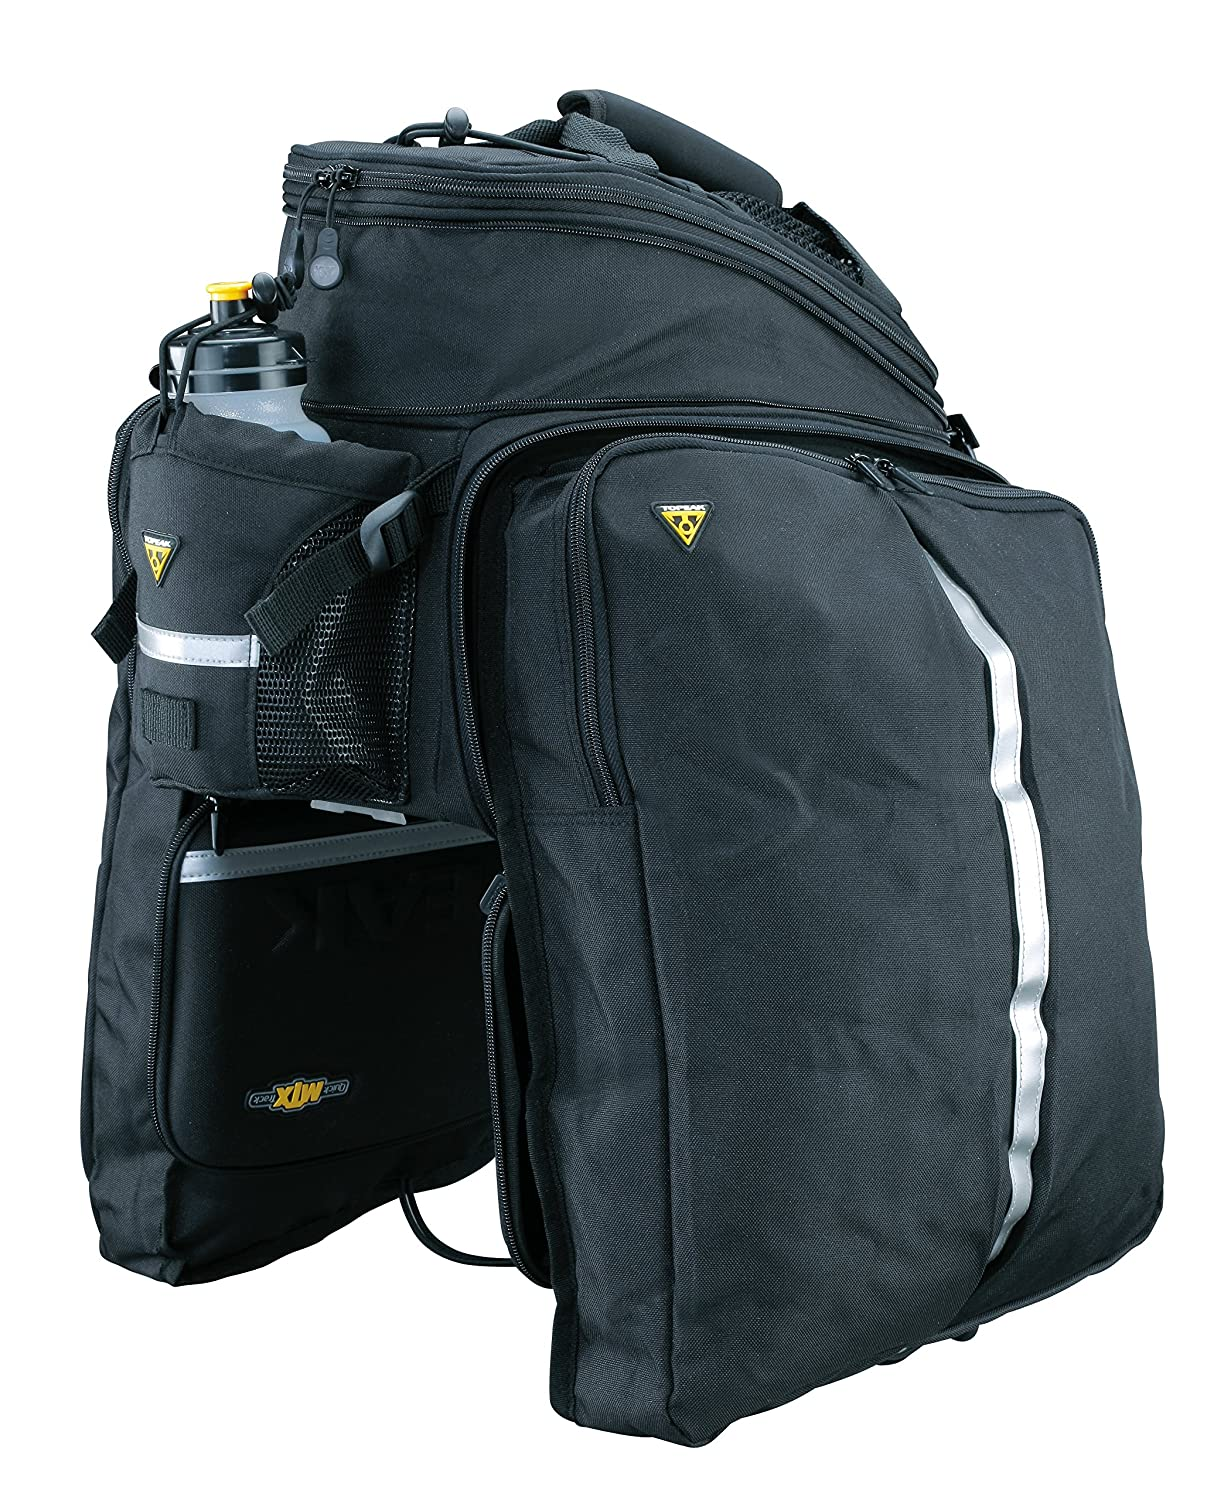 topeak mtx trunkbag dxp review